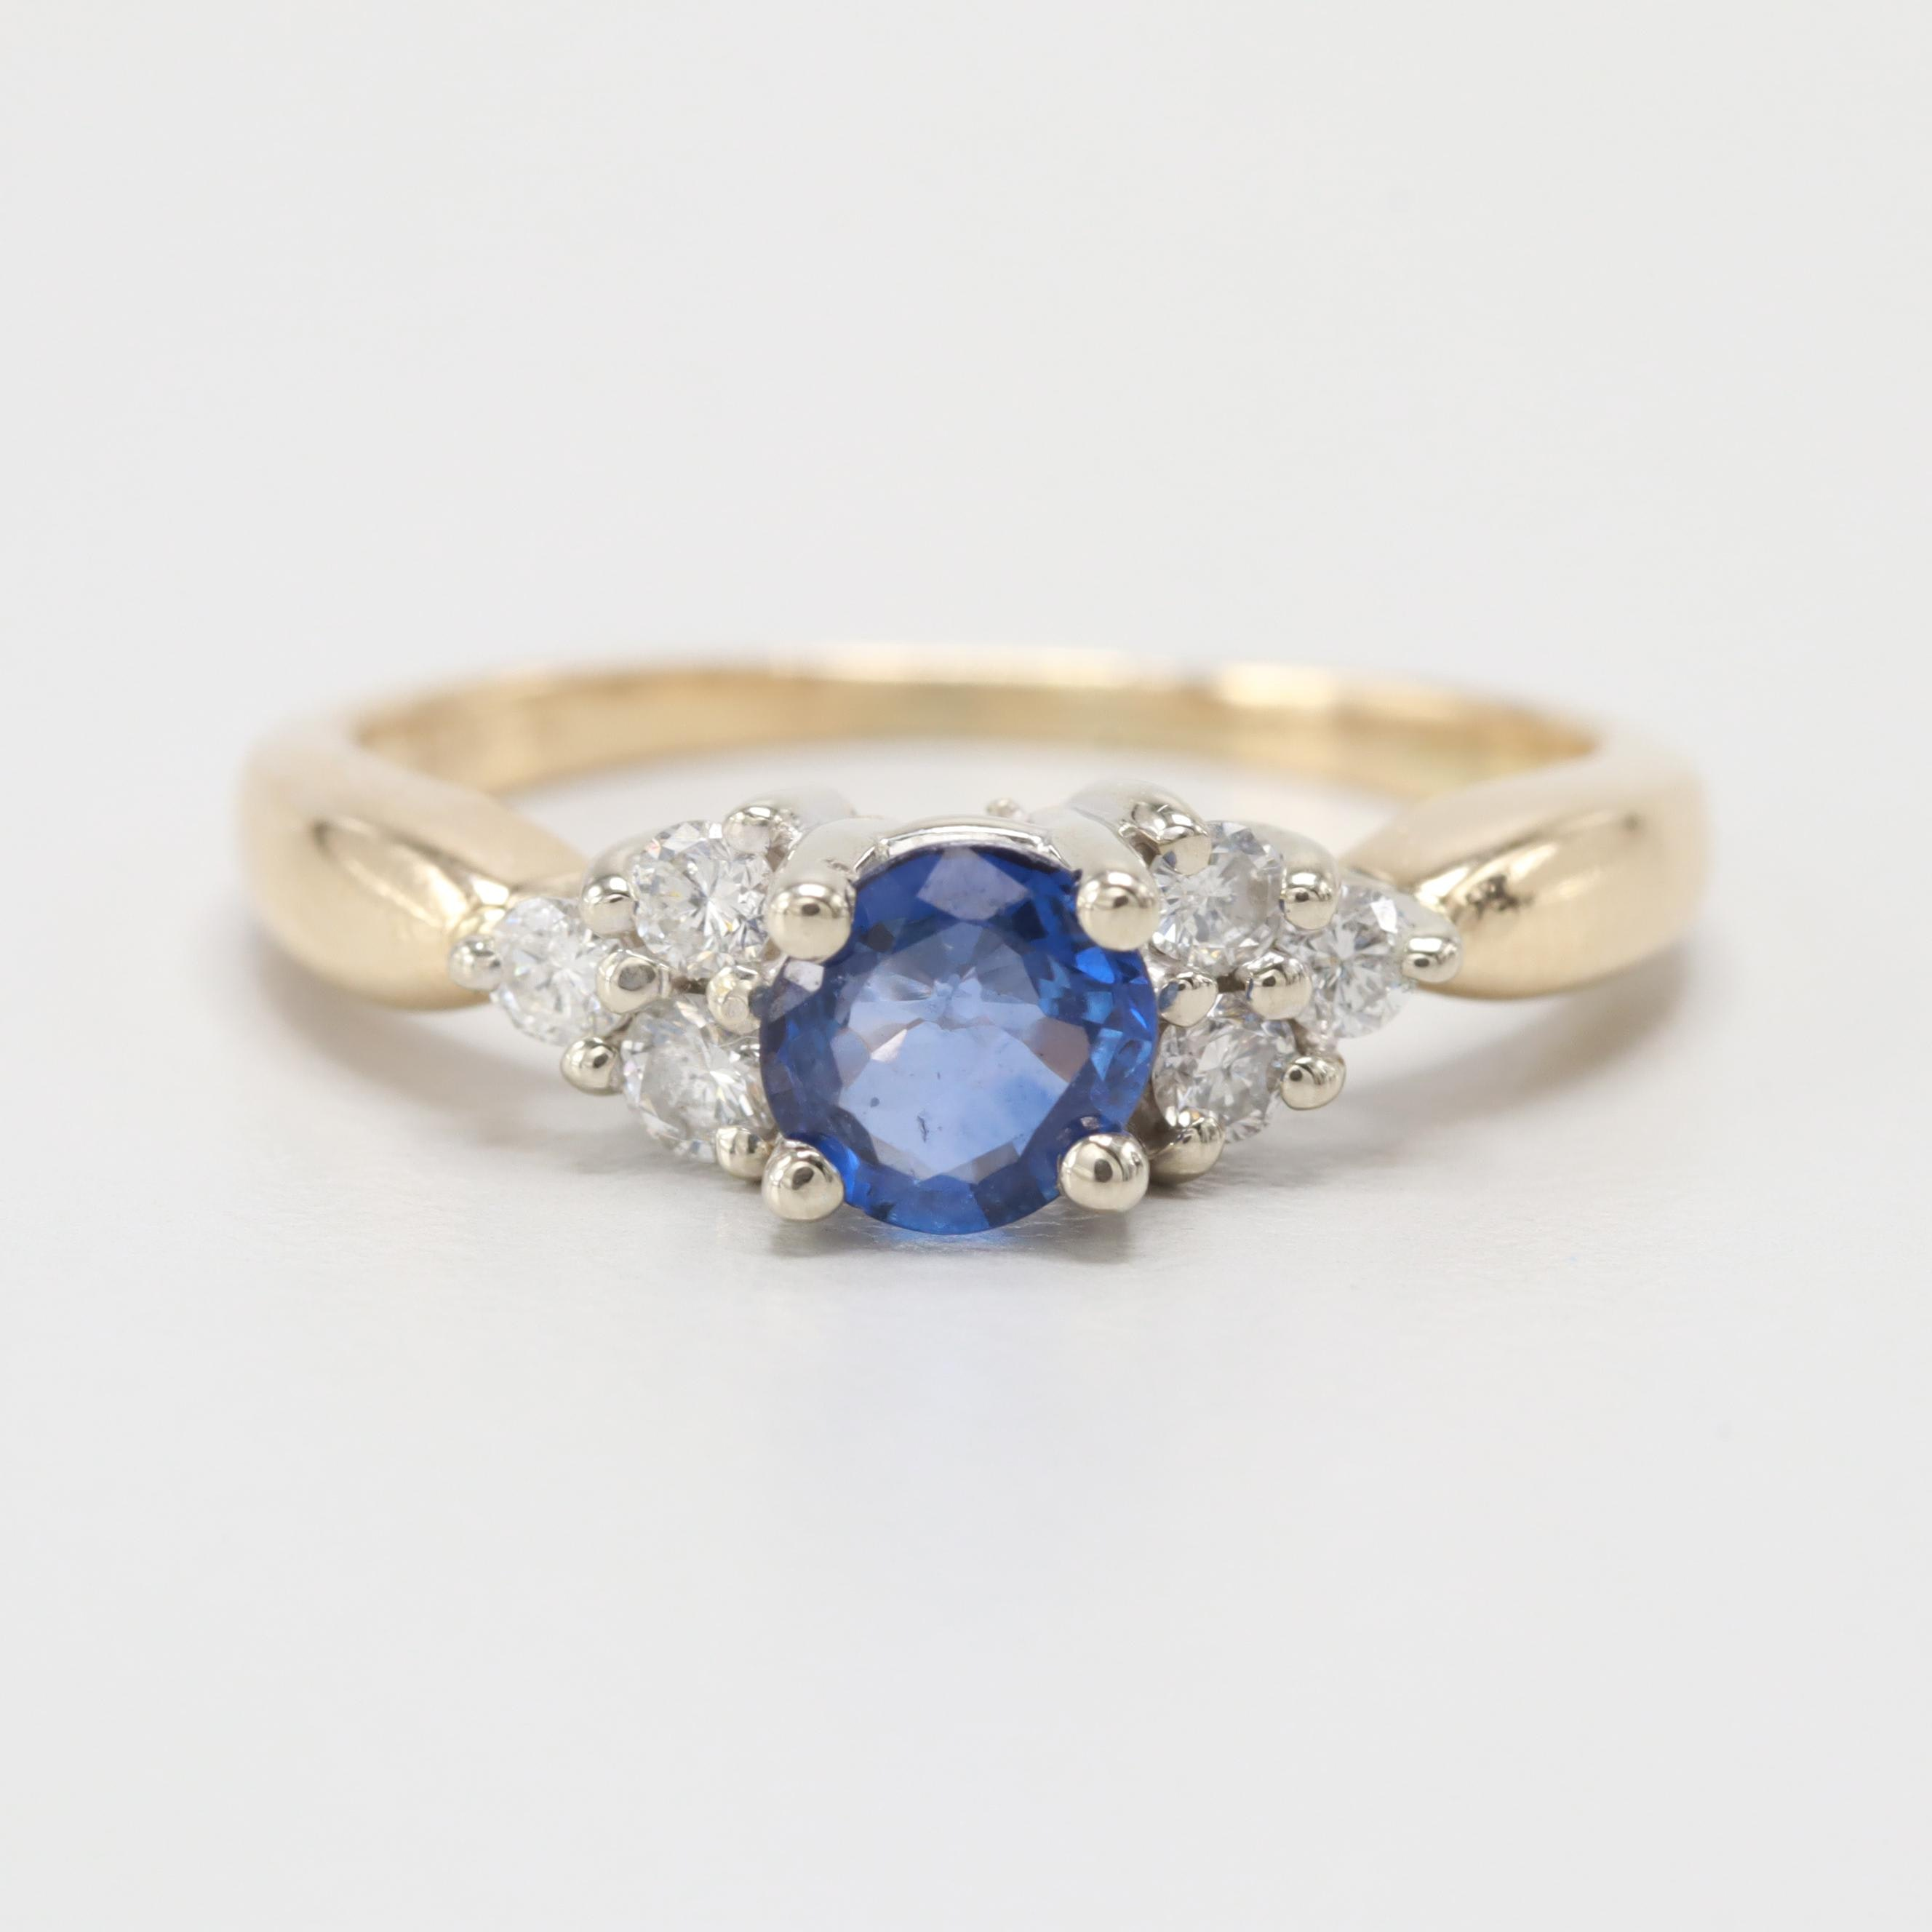 14K Yellow and White Gold Sapphire and Diamond Ring